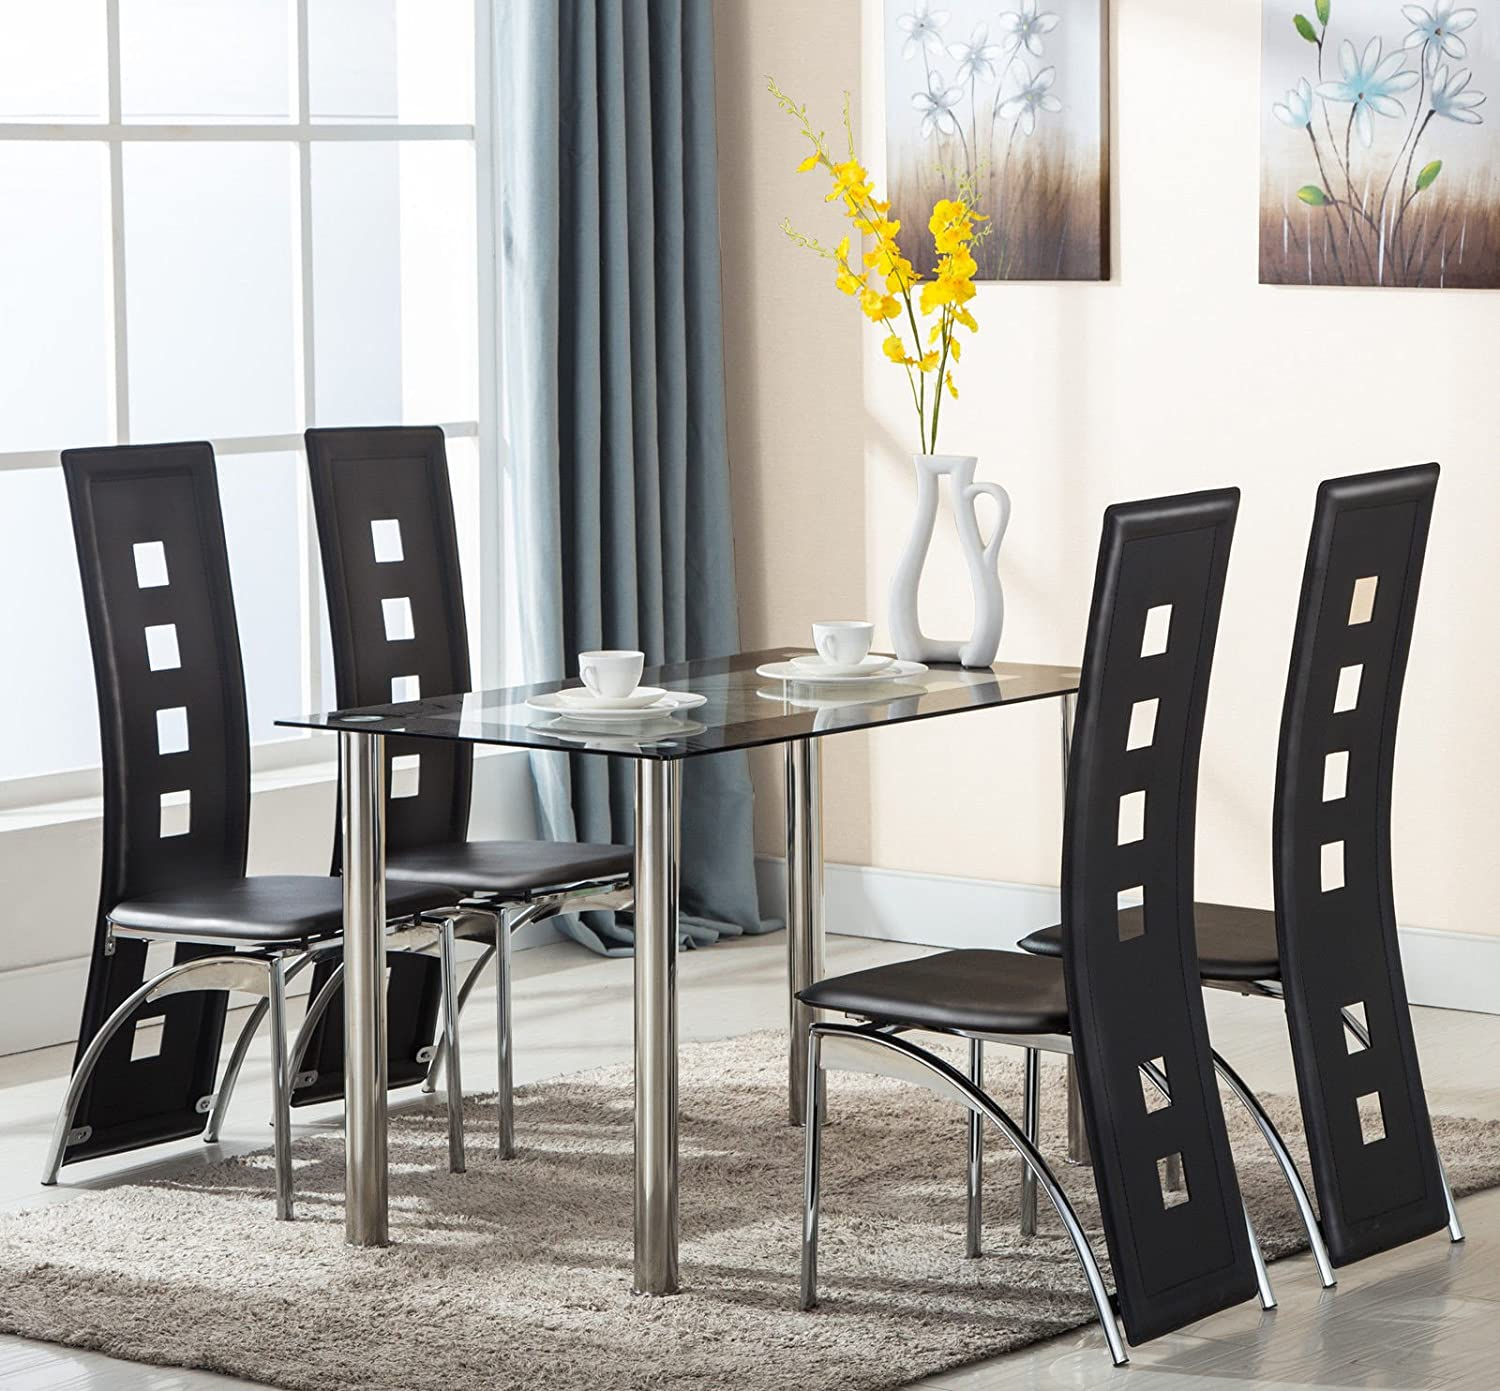 Amazon.com   Eight24hours 5 Piece Glass Dining Table Set 4 Leather Chairs  Kitchen Room Breakfast Furniture   Table U0026 Chair Sets